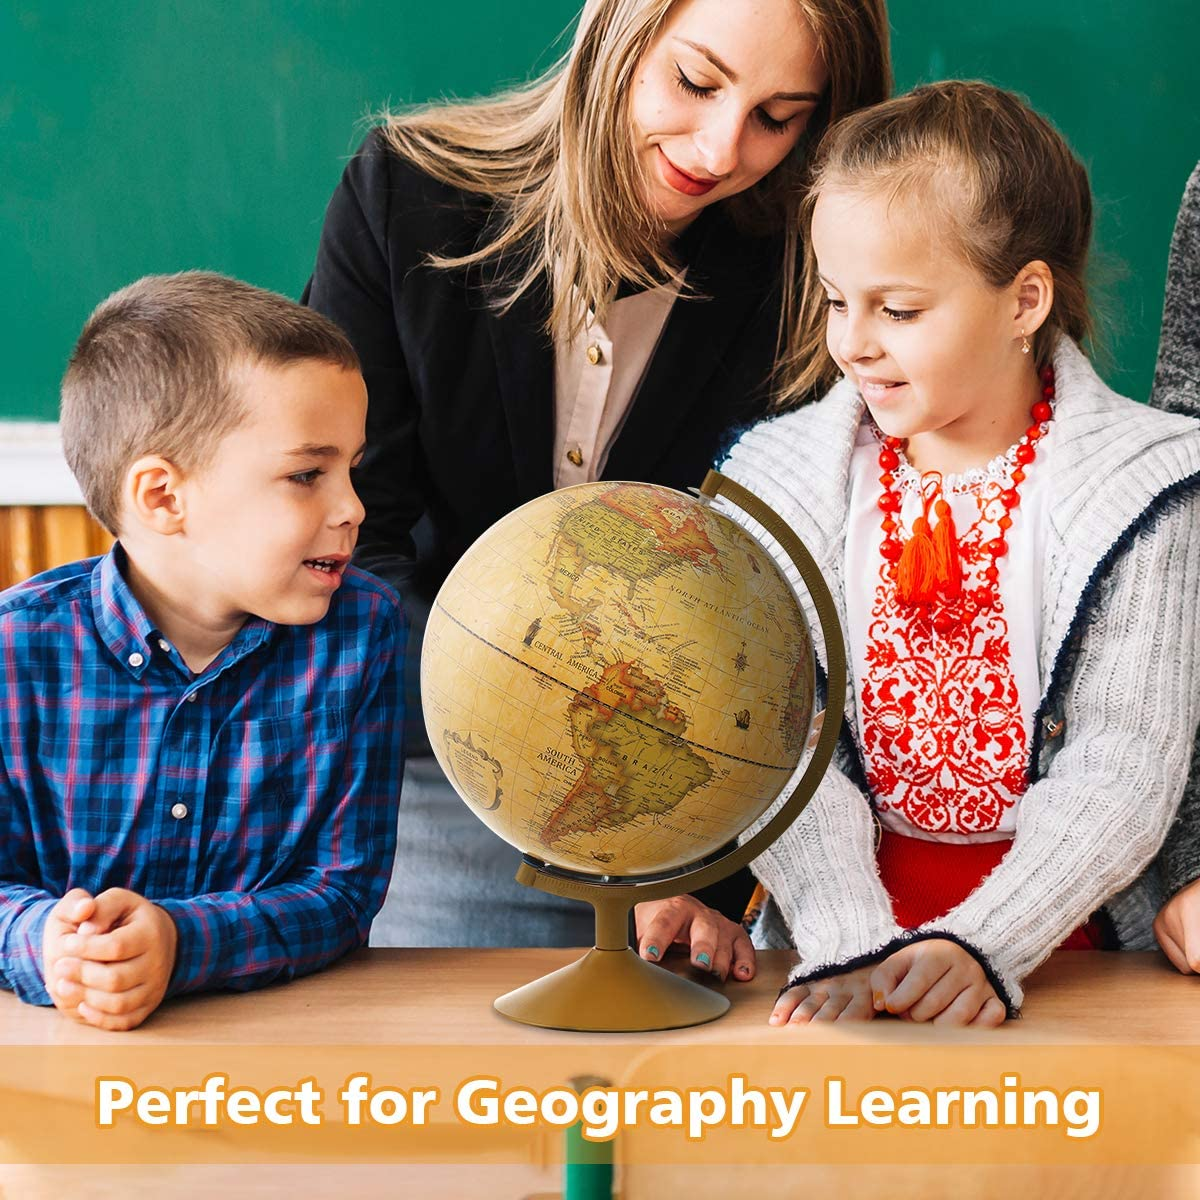 World Globe Earth Globe Educational Gift Toys Perfect Decoration for Office and Study KingSo Antique Globe for Kids 12 Inch Bronze Desktop World Globe with Steel Stand Over 4000 Locations